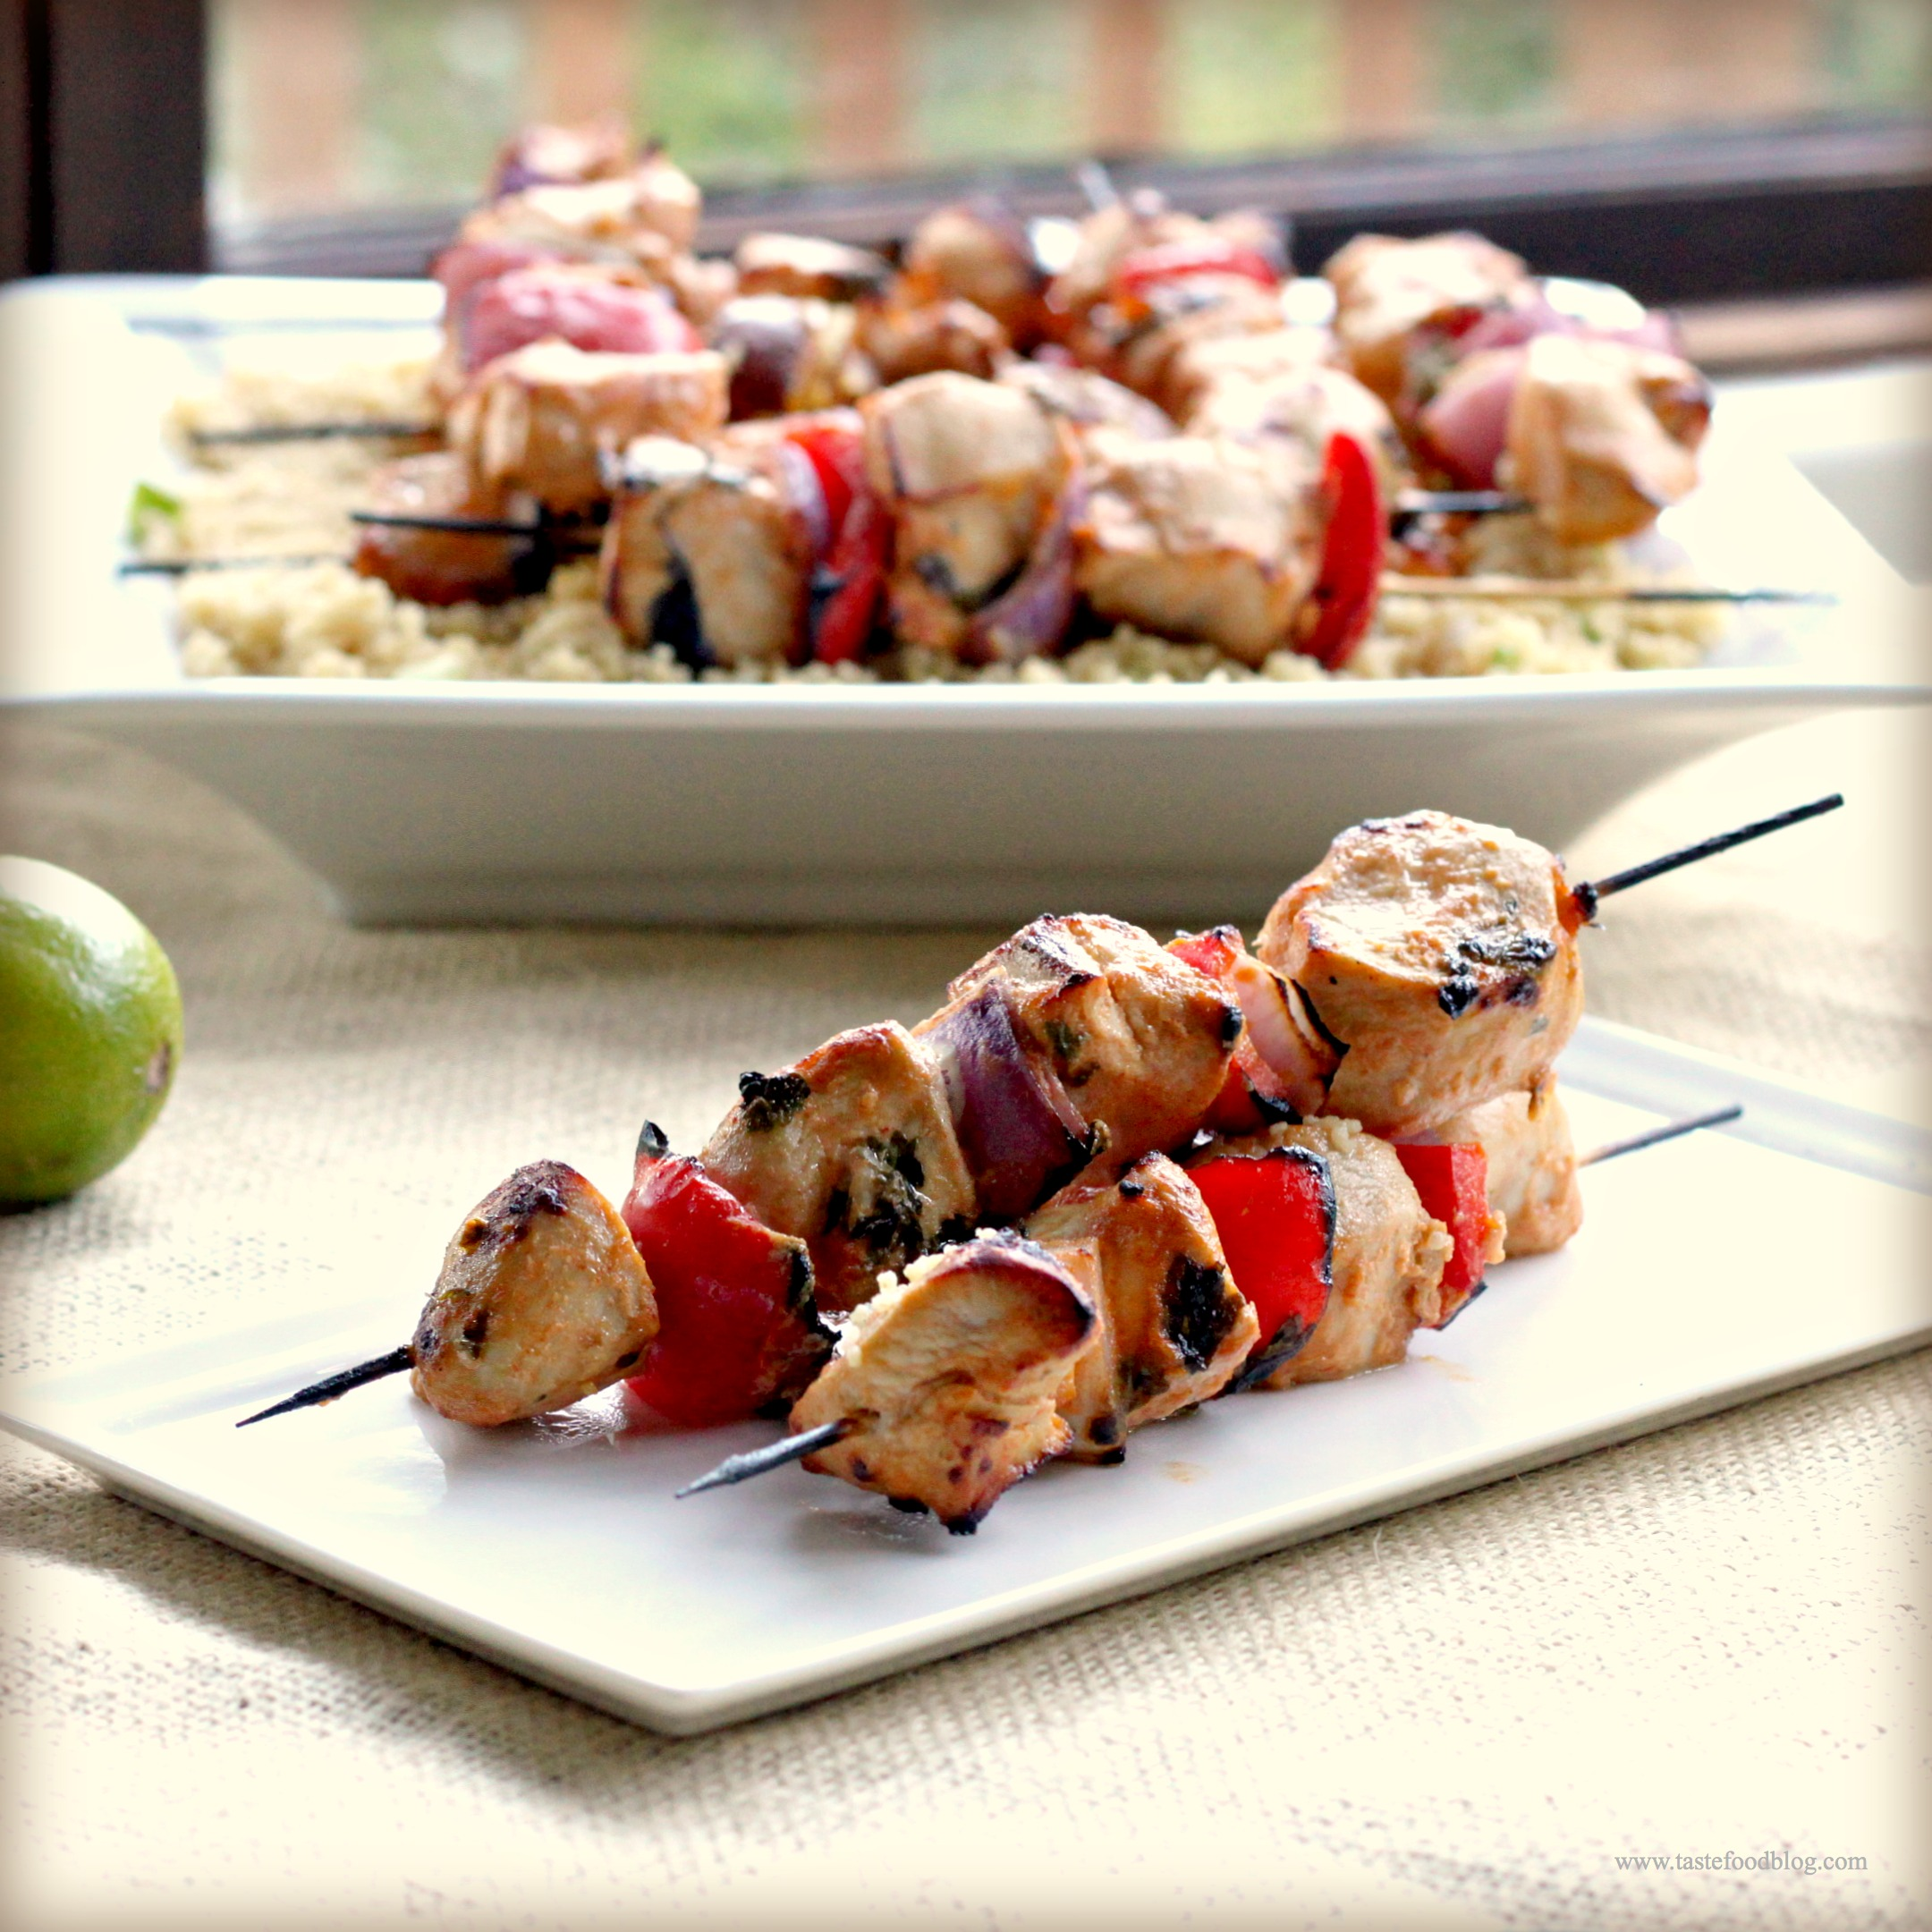 How long do i grill chicken skewers - No Fail Sriracha Marinade And A Recipe For Grilled Chicken Skewers